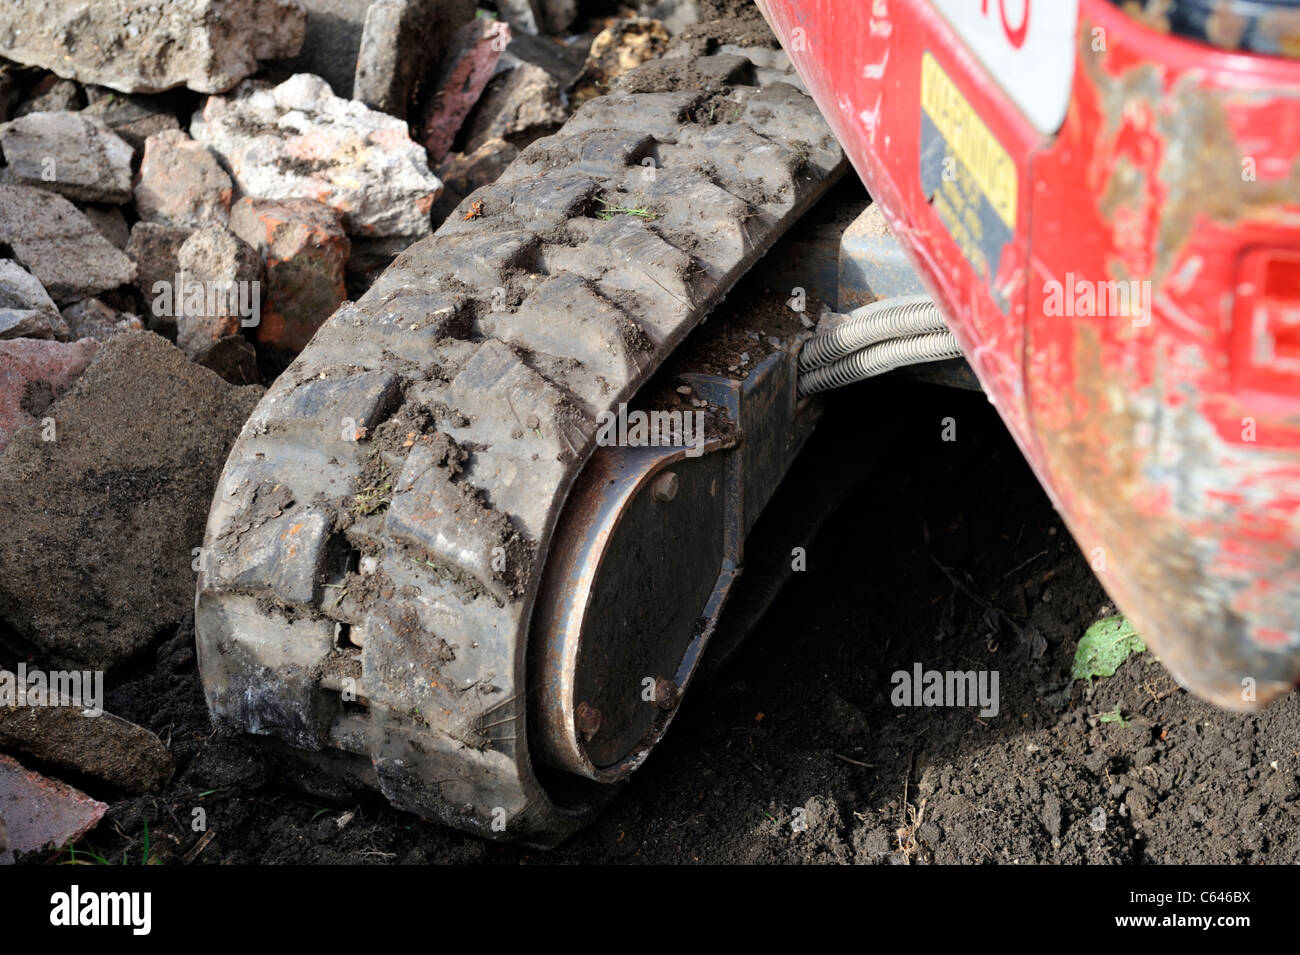 Detail of rubber padded continuous or caterpillar track on small digger machine - Stock Image